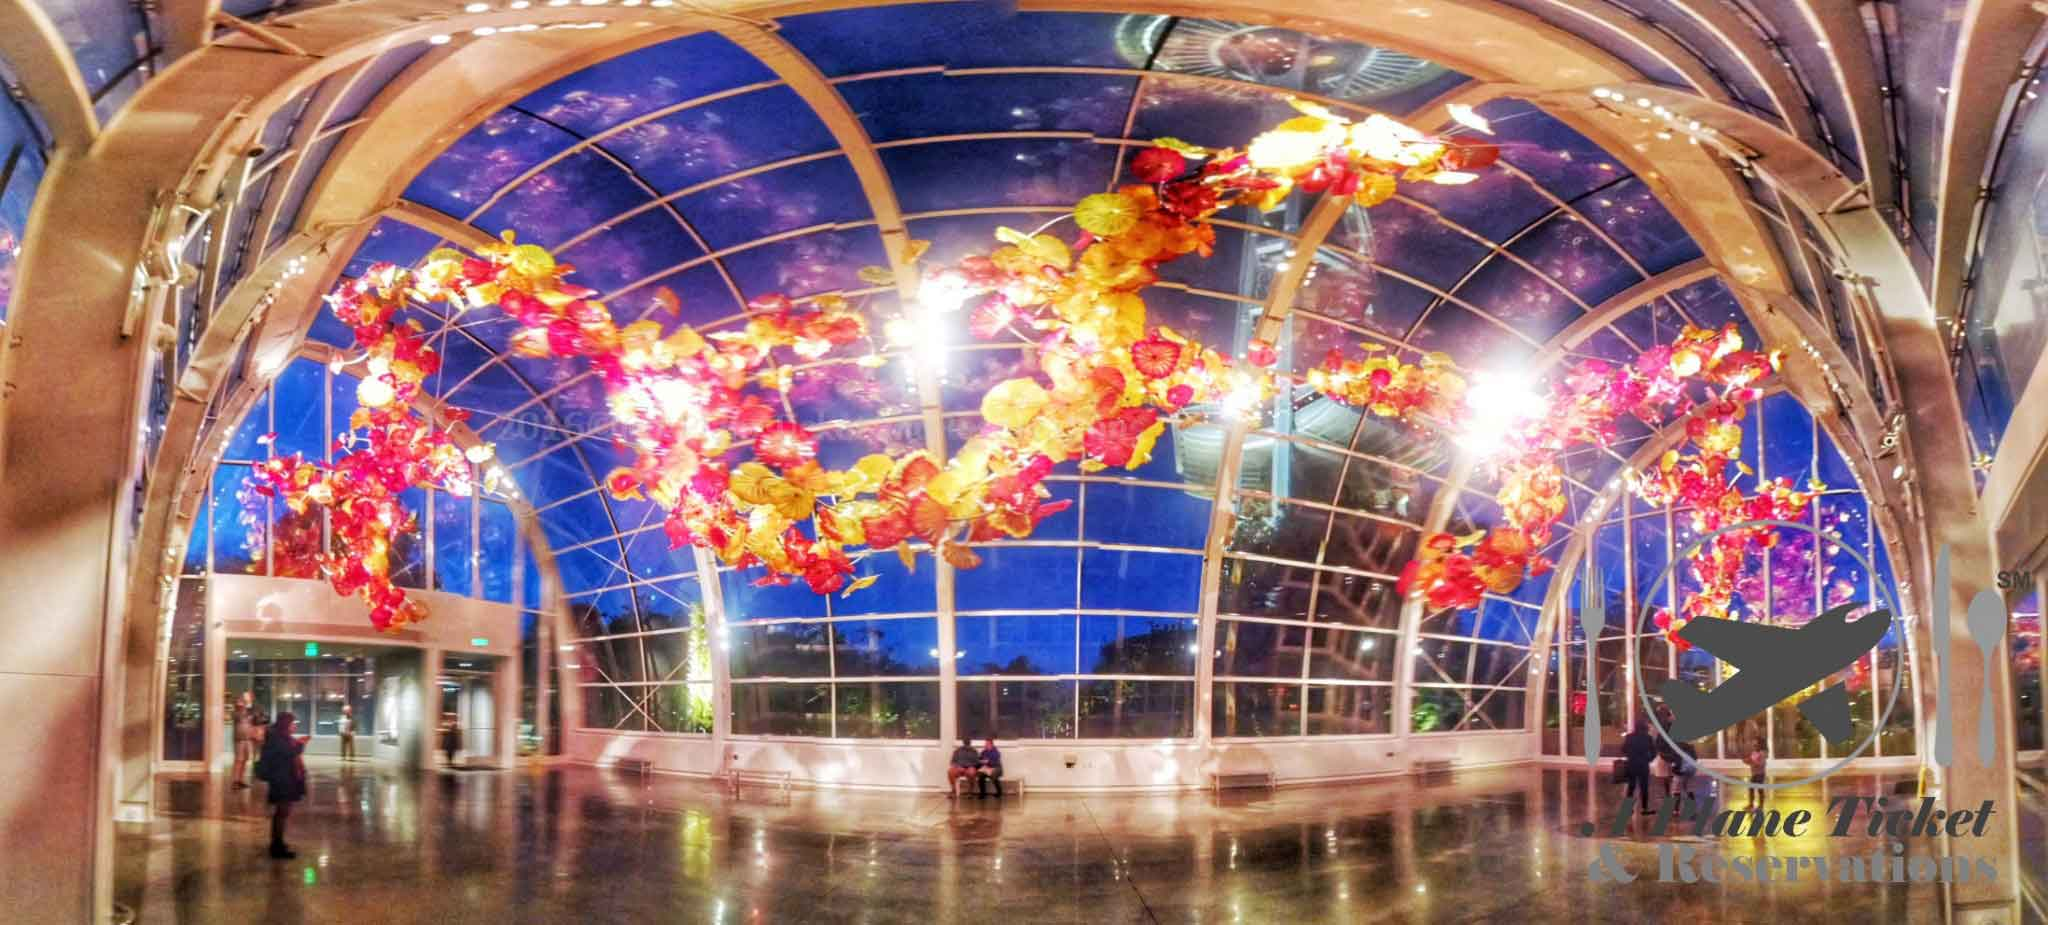 Chihuly Garden And Glass Seattle 39 S Alice In Wonderland A Plane Ticket Reservations